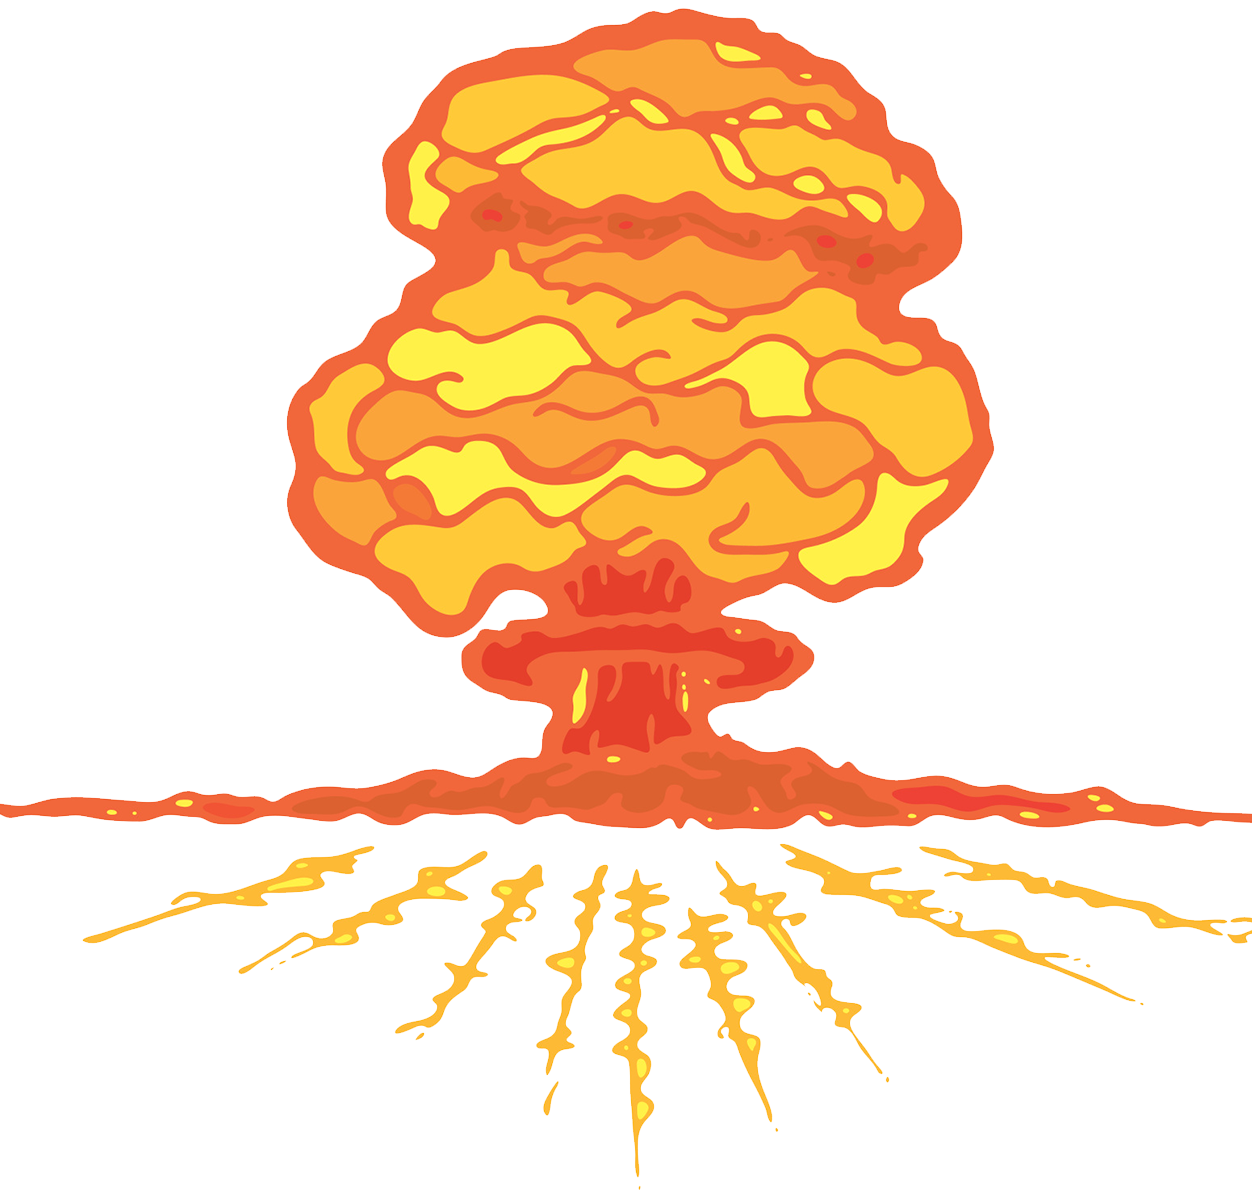 Clouds clipart explosion. Mushroom cloud nuclear weapon